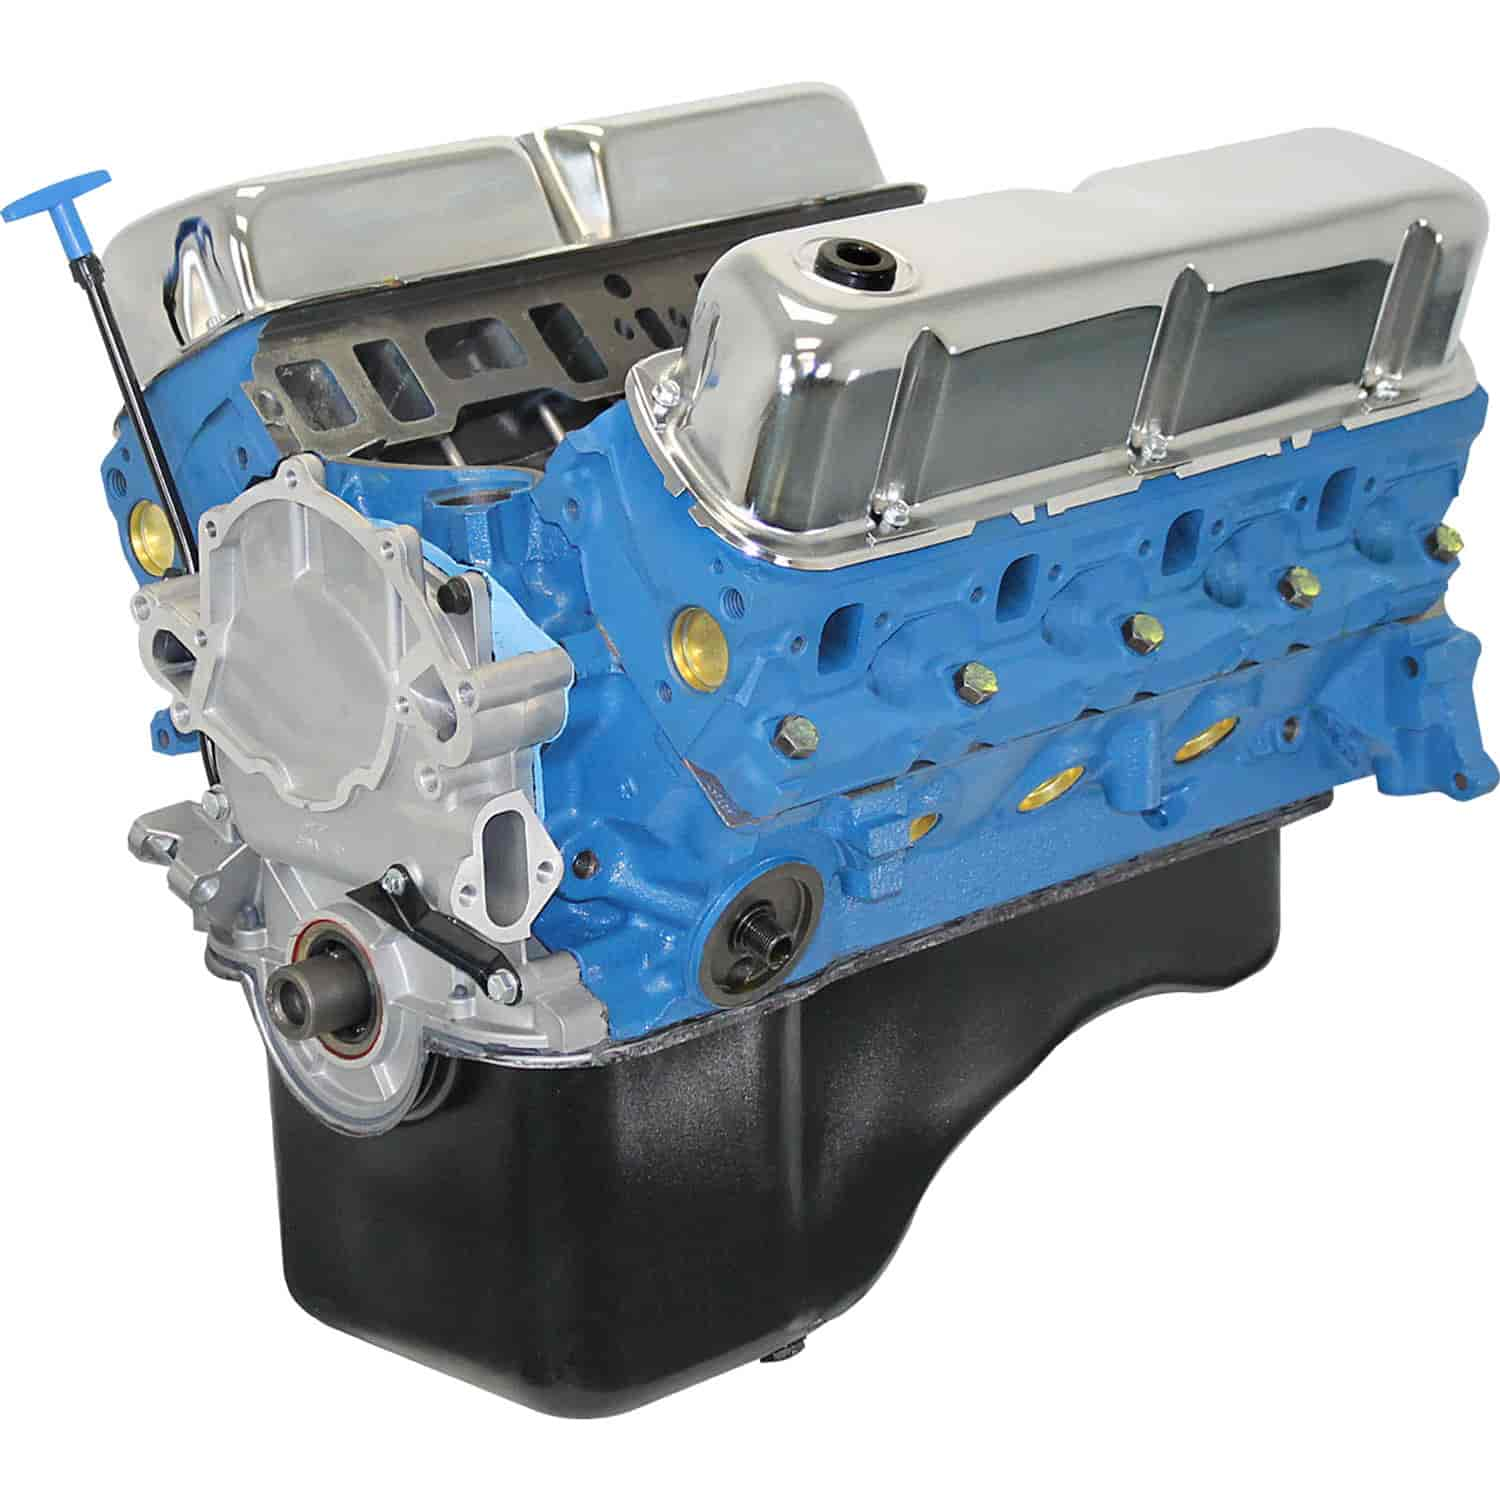 Blueprint Engines Ford Small Block 302ci Base Crate Engine 300HP 336TQ w/  Cast Iron Heads